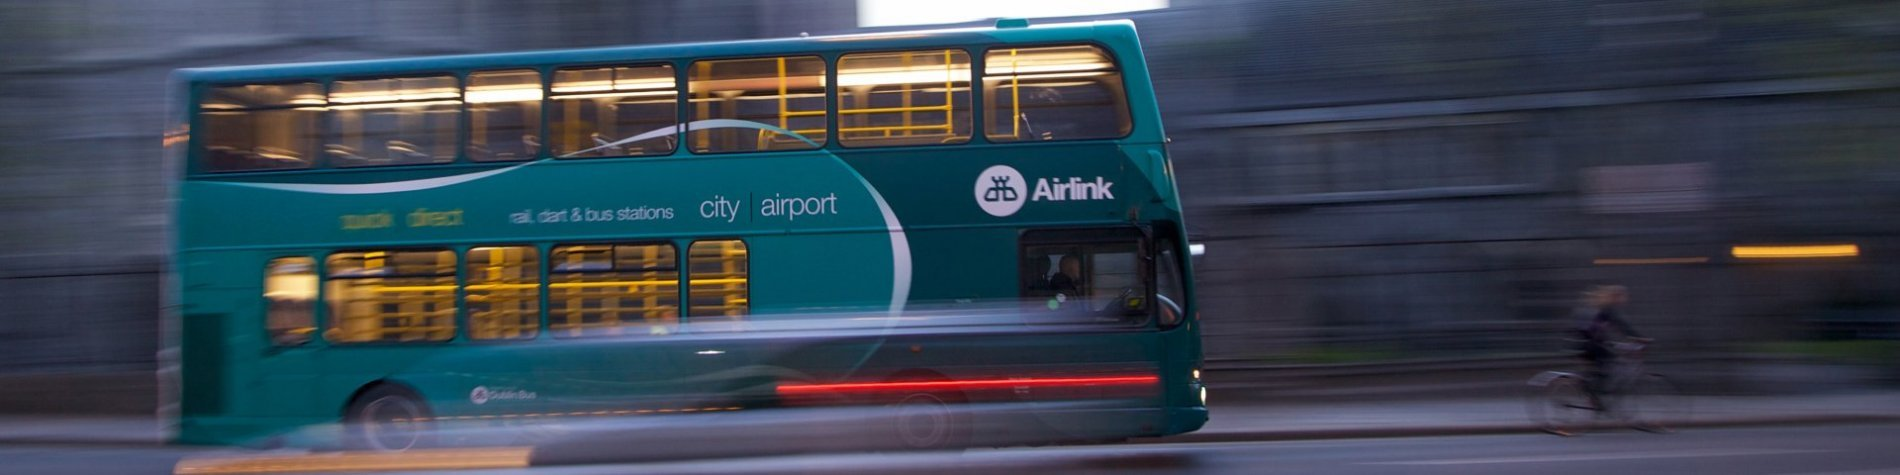 Dublin Airlink Bus - Airport Transfers